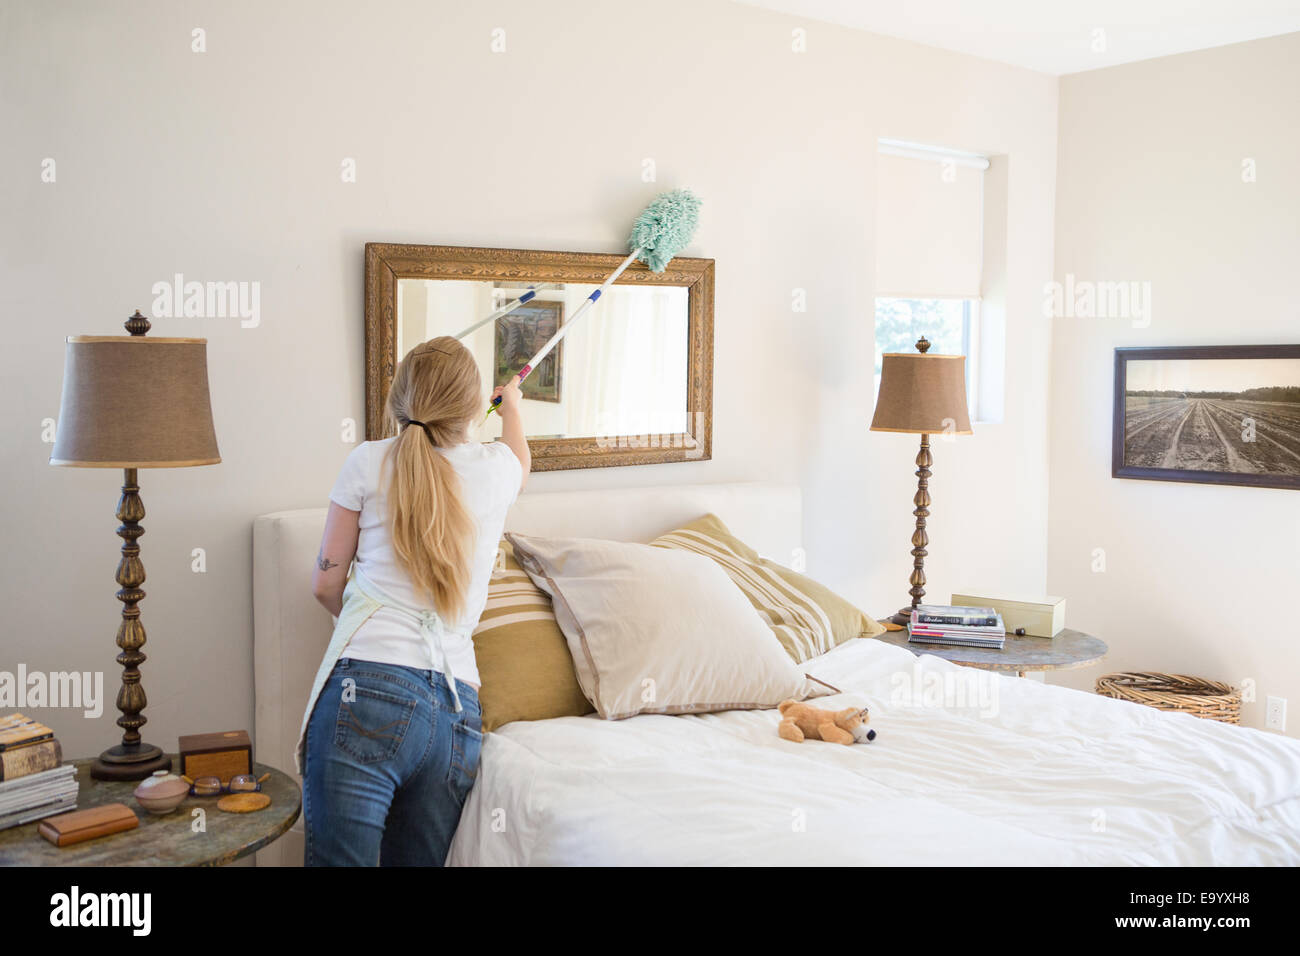 Young Woman Cleaning Bedroom With Green Cleaning Products